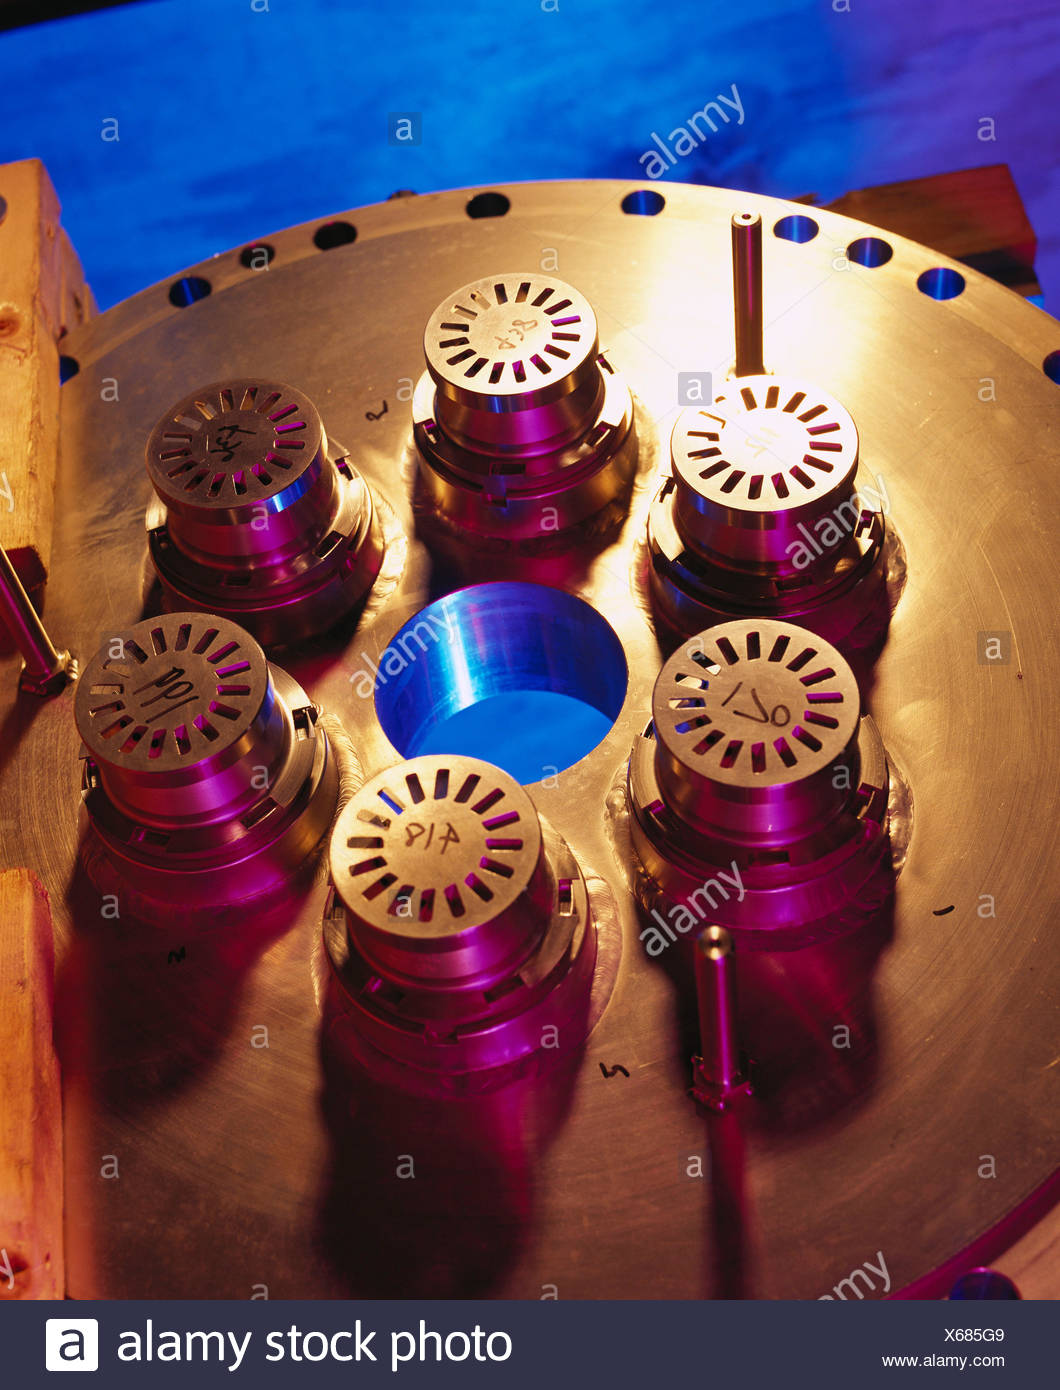 Gas turbine, power parts in warehouse, shots of engine parts